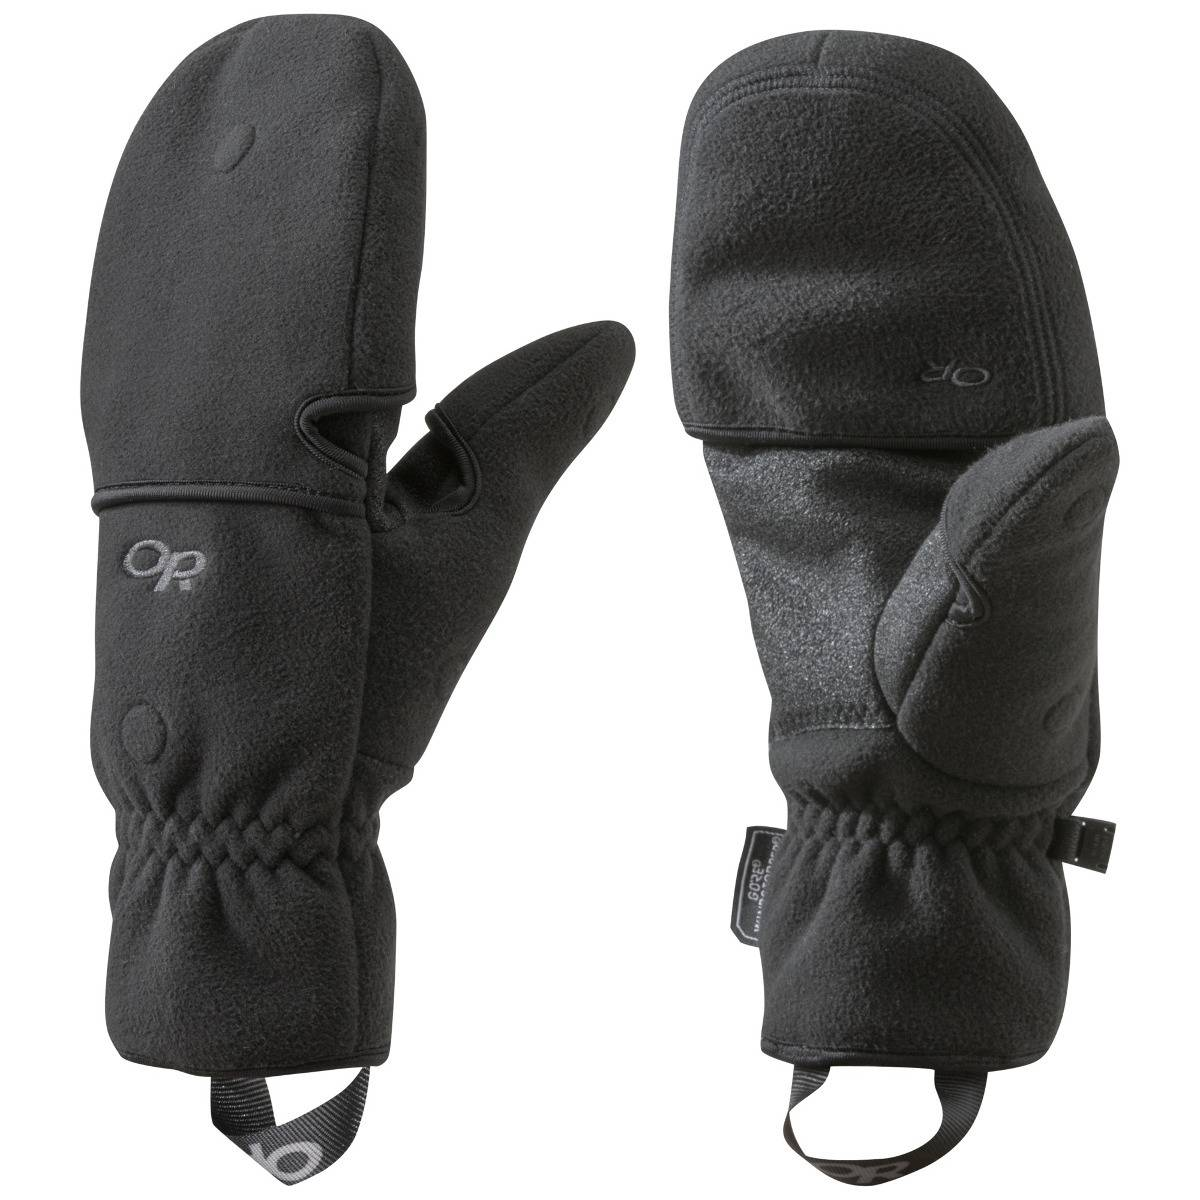 Outdoor Research Gripper Convertible Gloves, Black